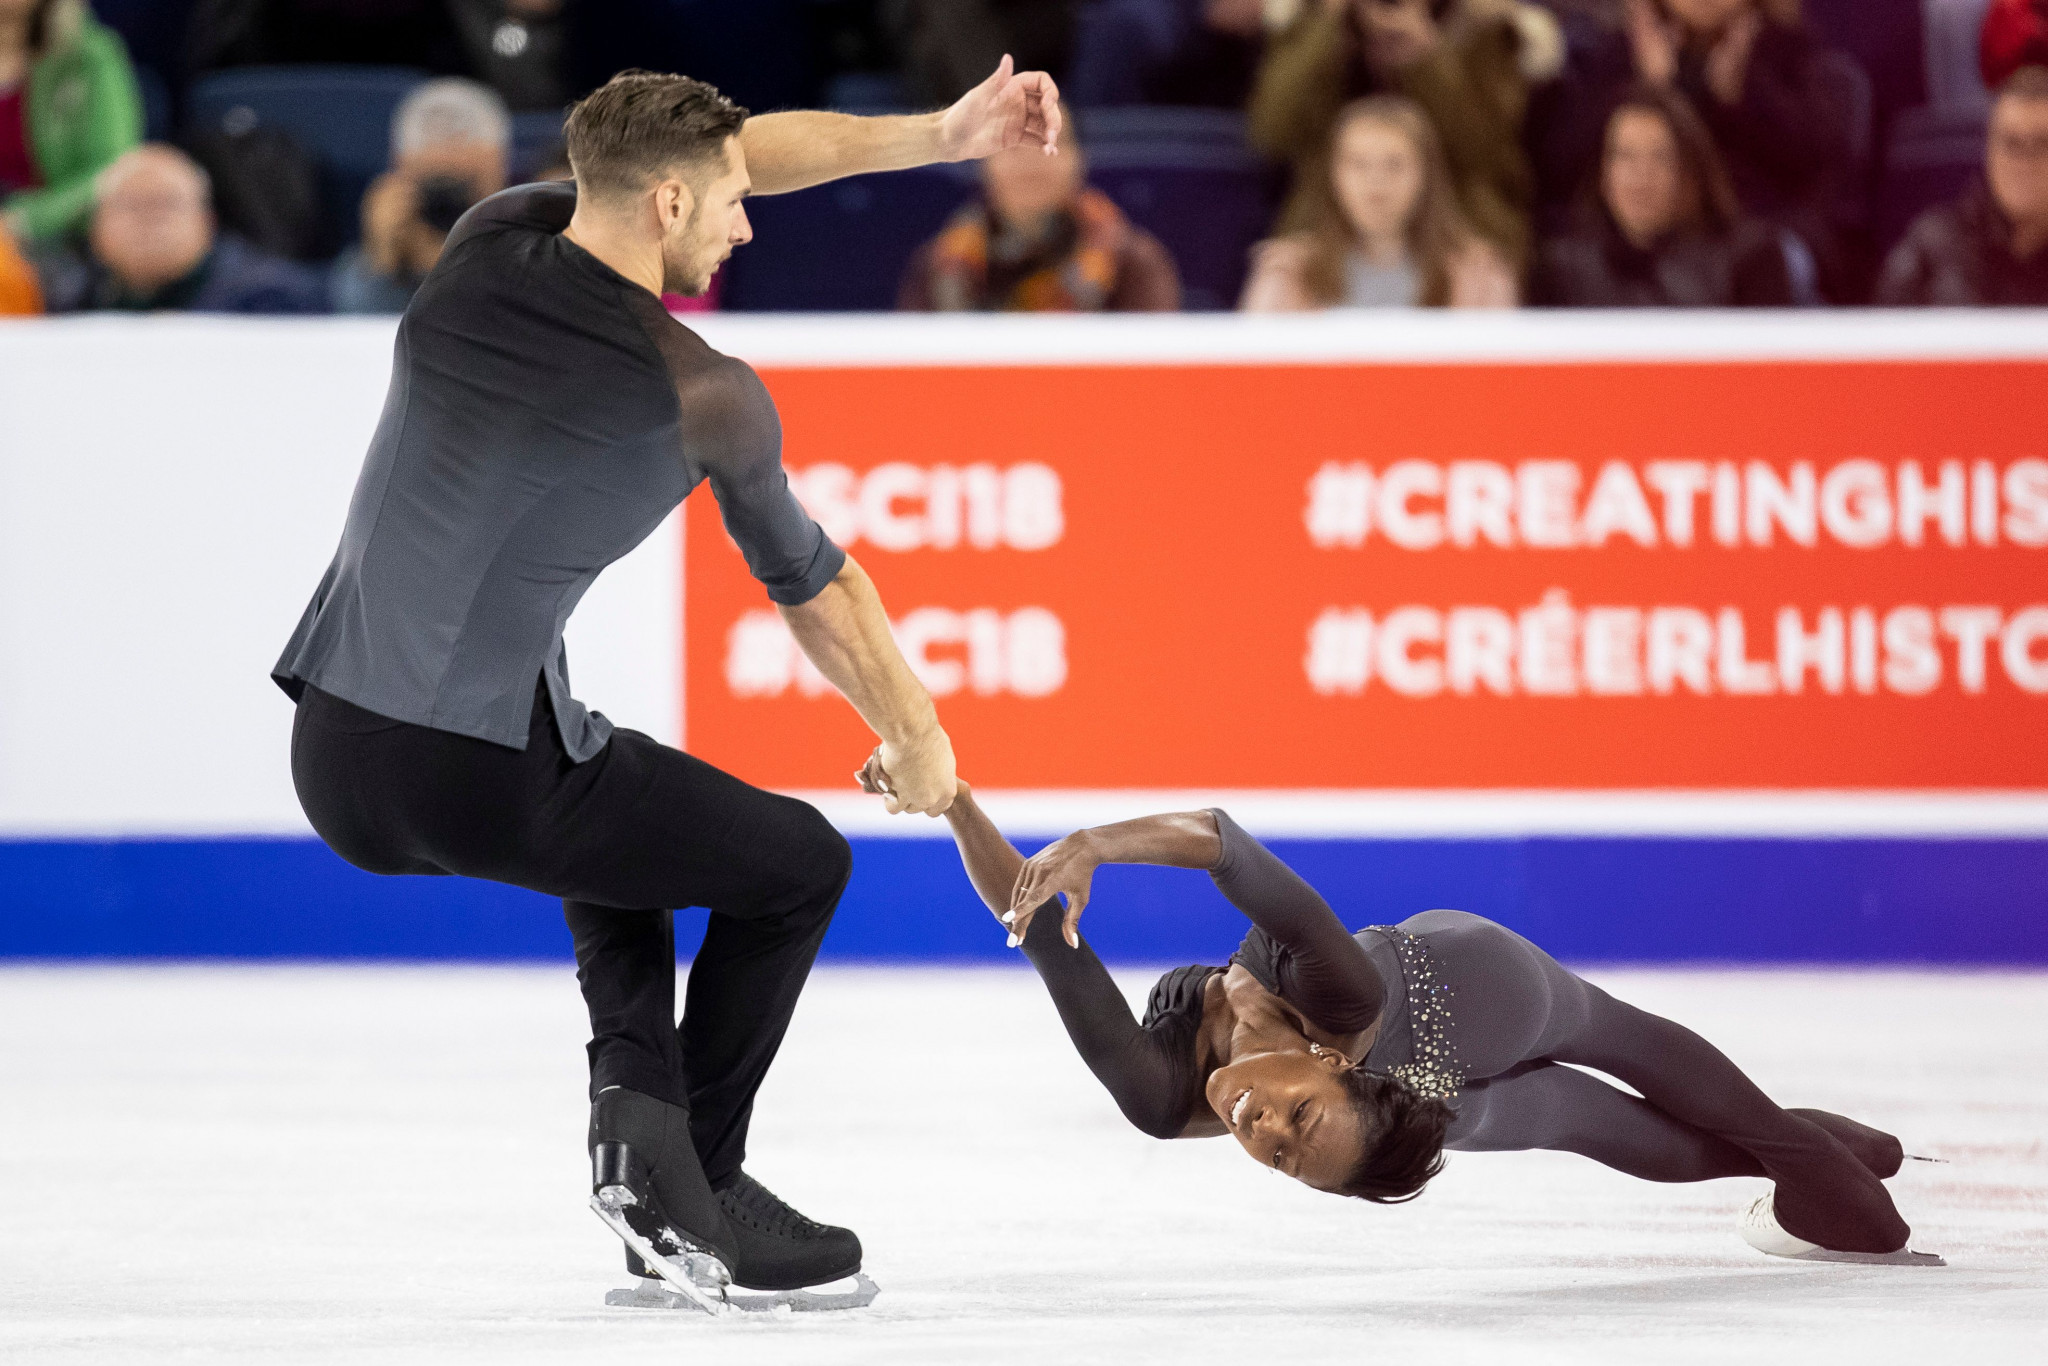 France's Vanessa James and Morgan Ciprès clinched the pairs short programme title ©Getty Images